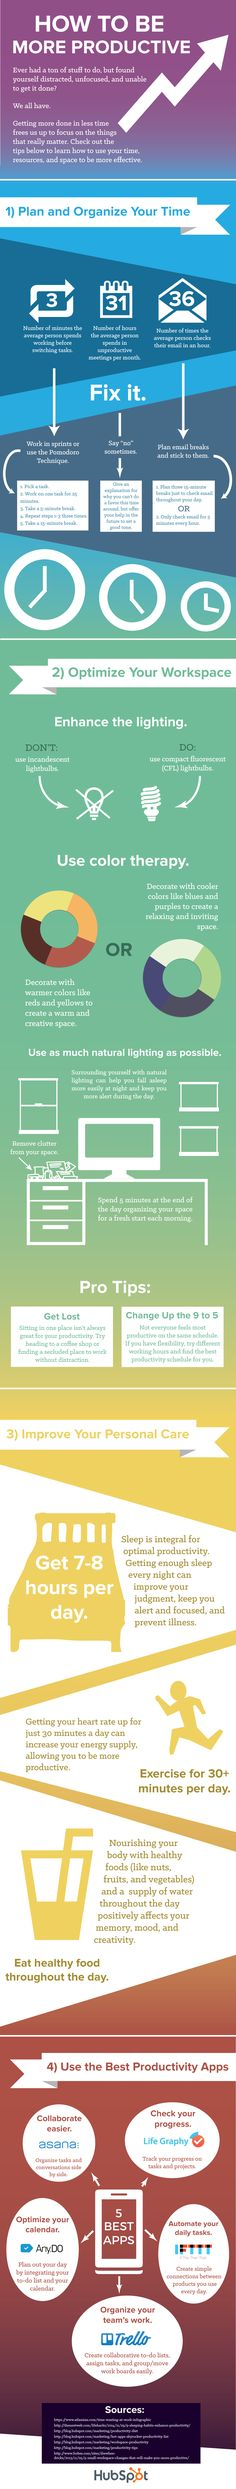 13 productivity tips for the busy professional - Uncover these tips, and be one step closer to getting out on time at the end of the week.